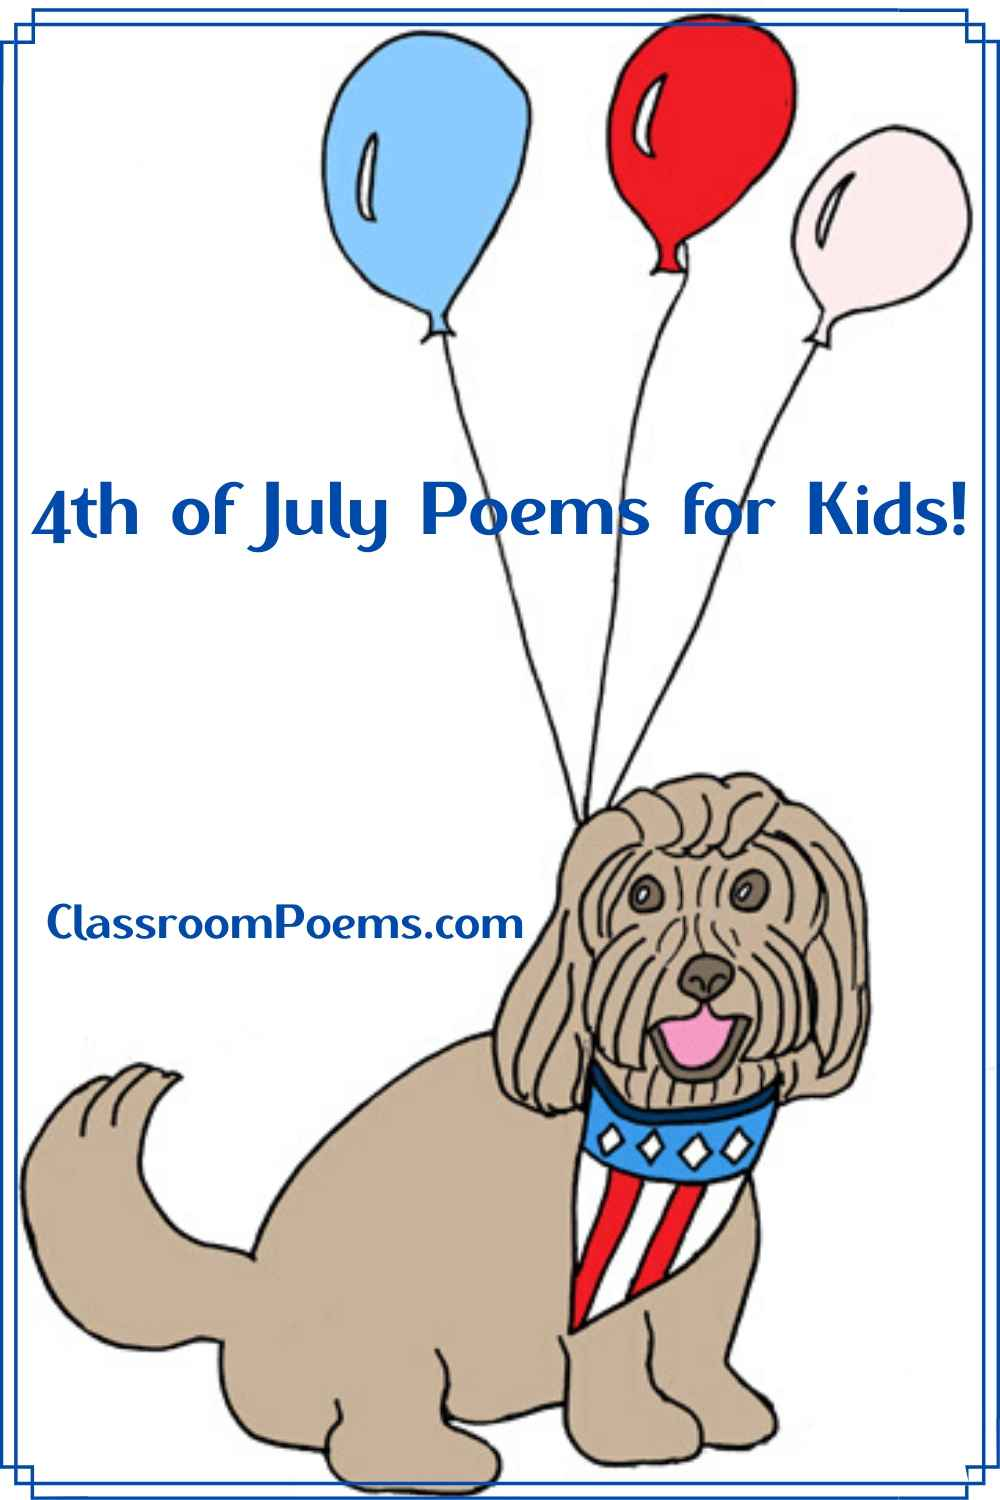 Independence Day poems. 4th of July poems for kids. Dog with red, white and blue balloons.